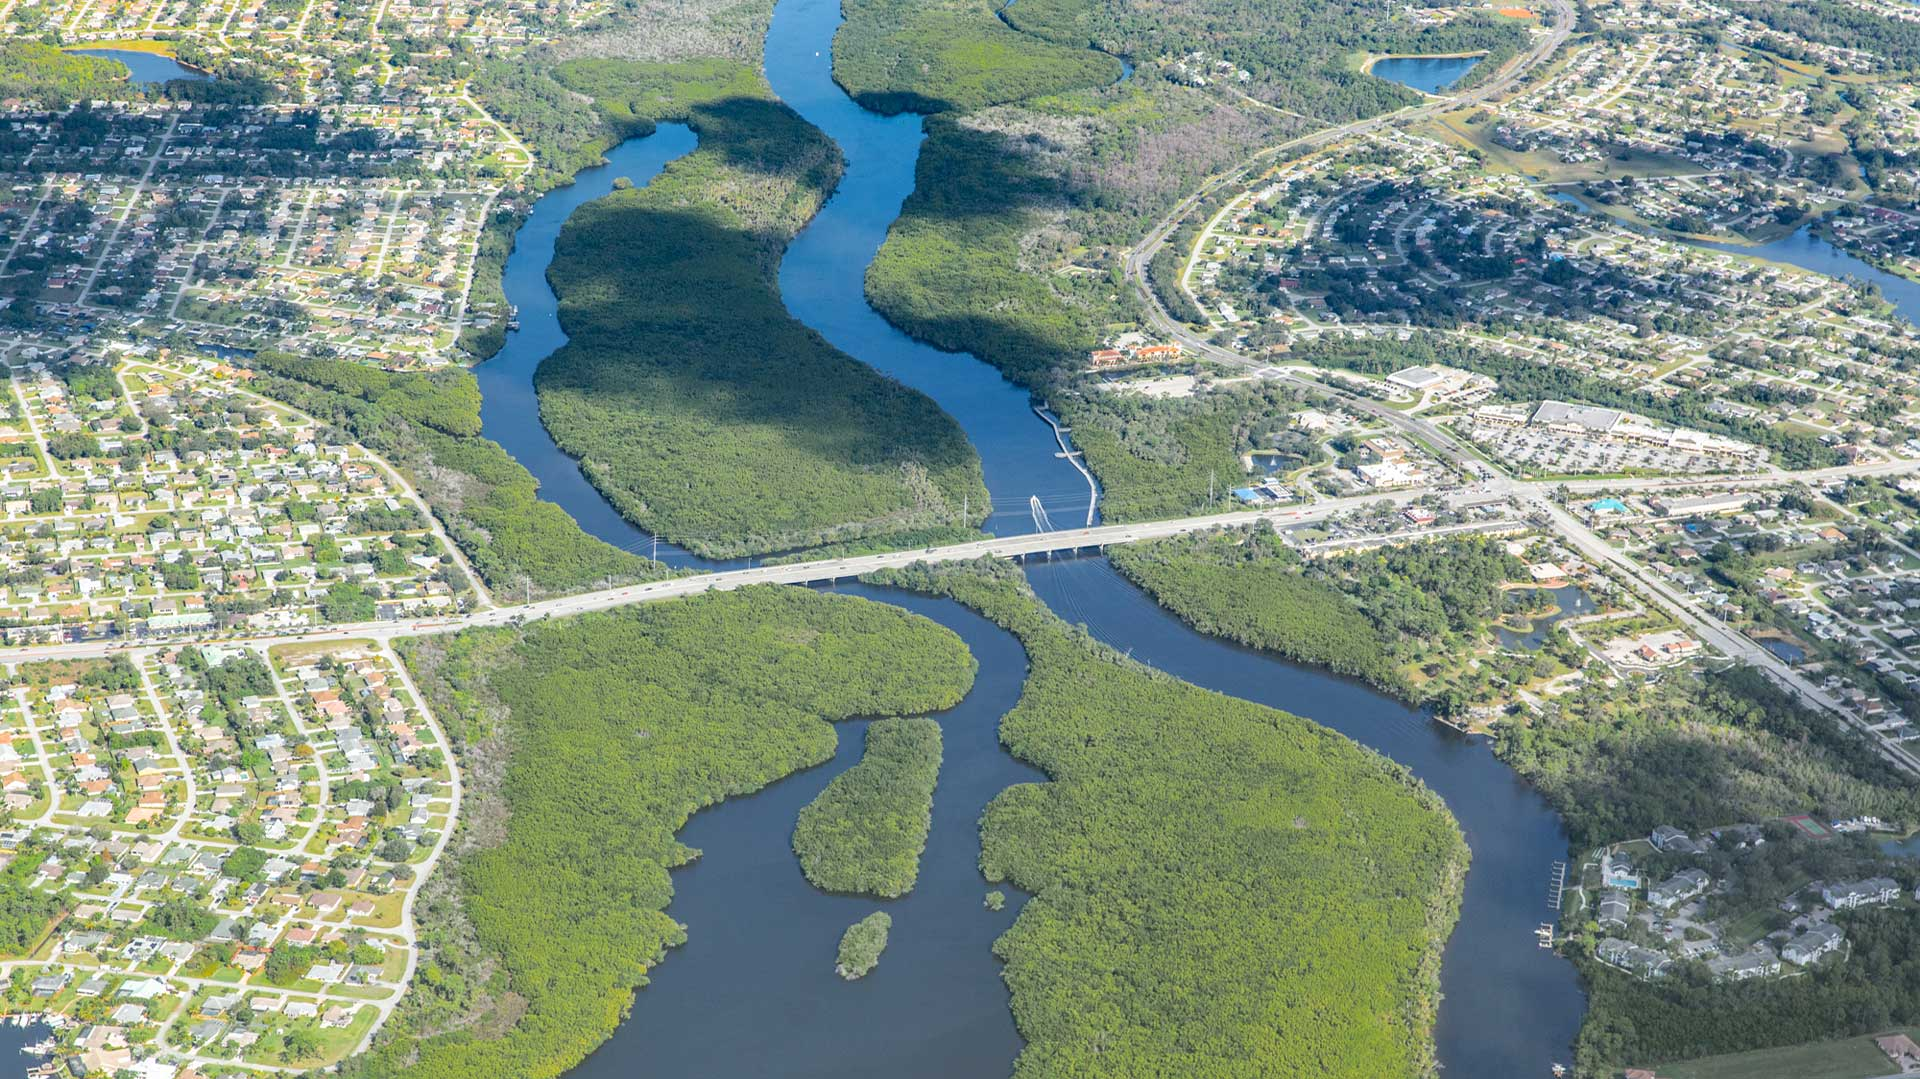 Aerial image of Port St. Lucie and the St. Lucie River. Port St. Lucie - the ideal place to move to!